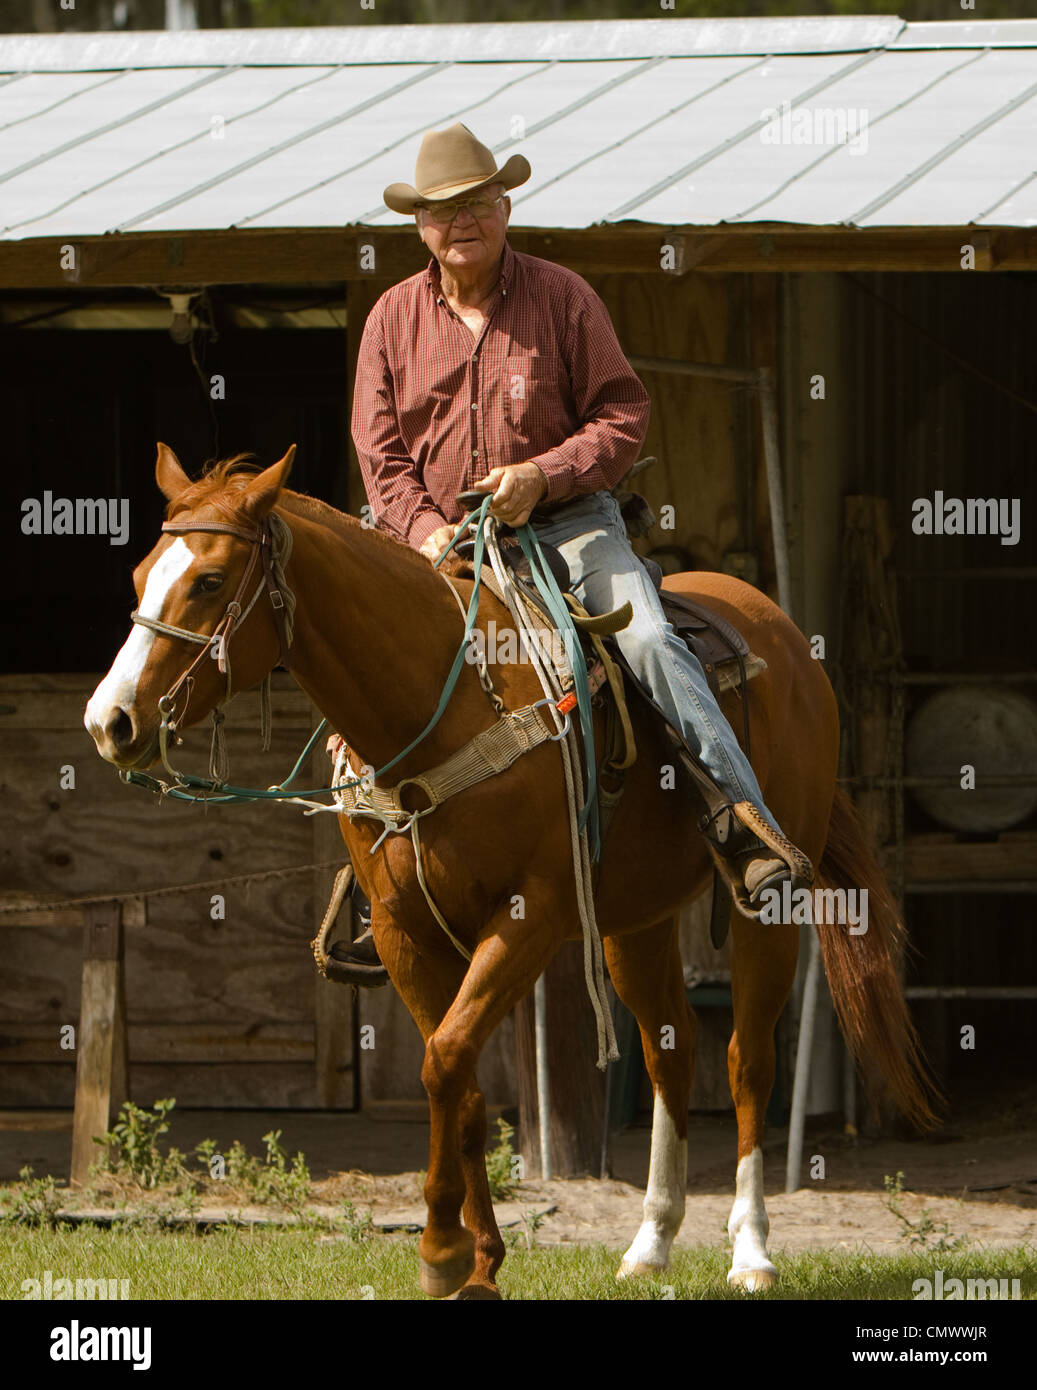 A cowboy heading out for a days work herding cows and mending fences. - Stock Image